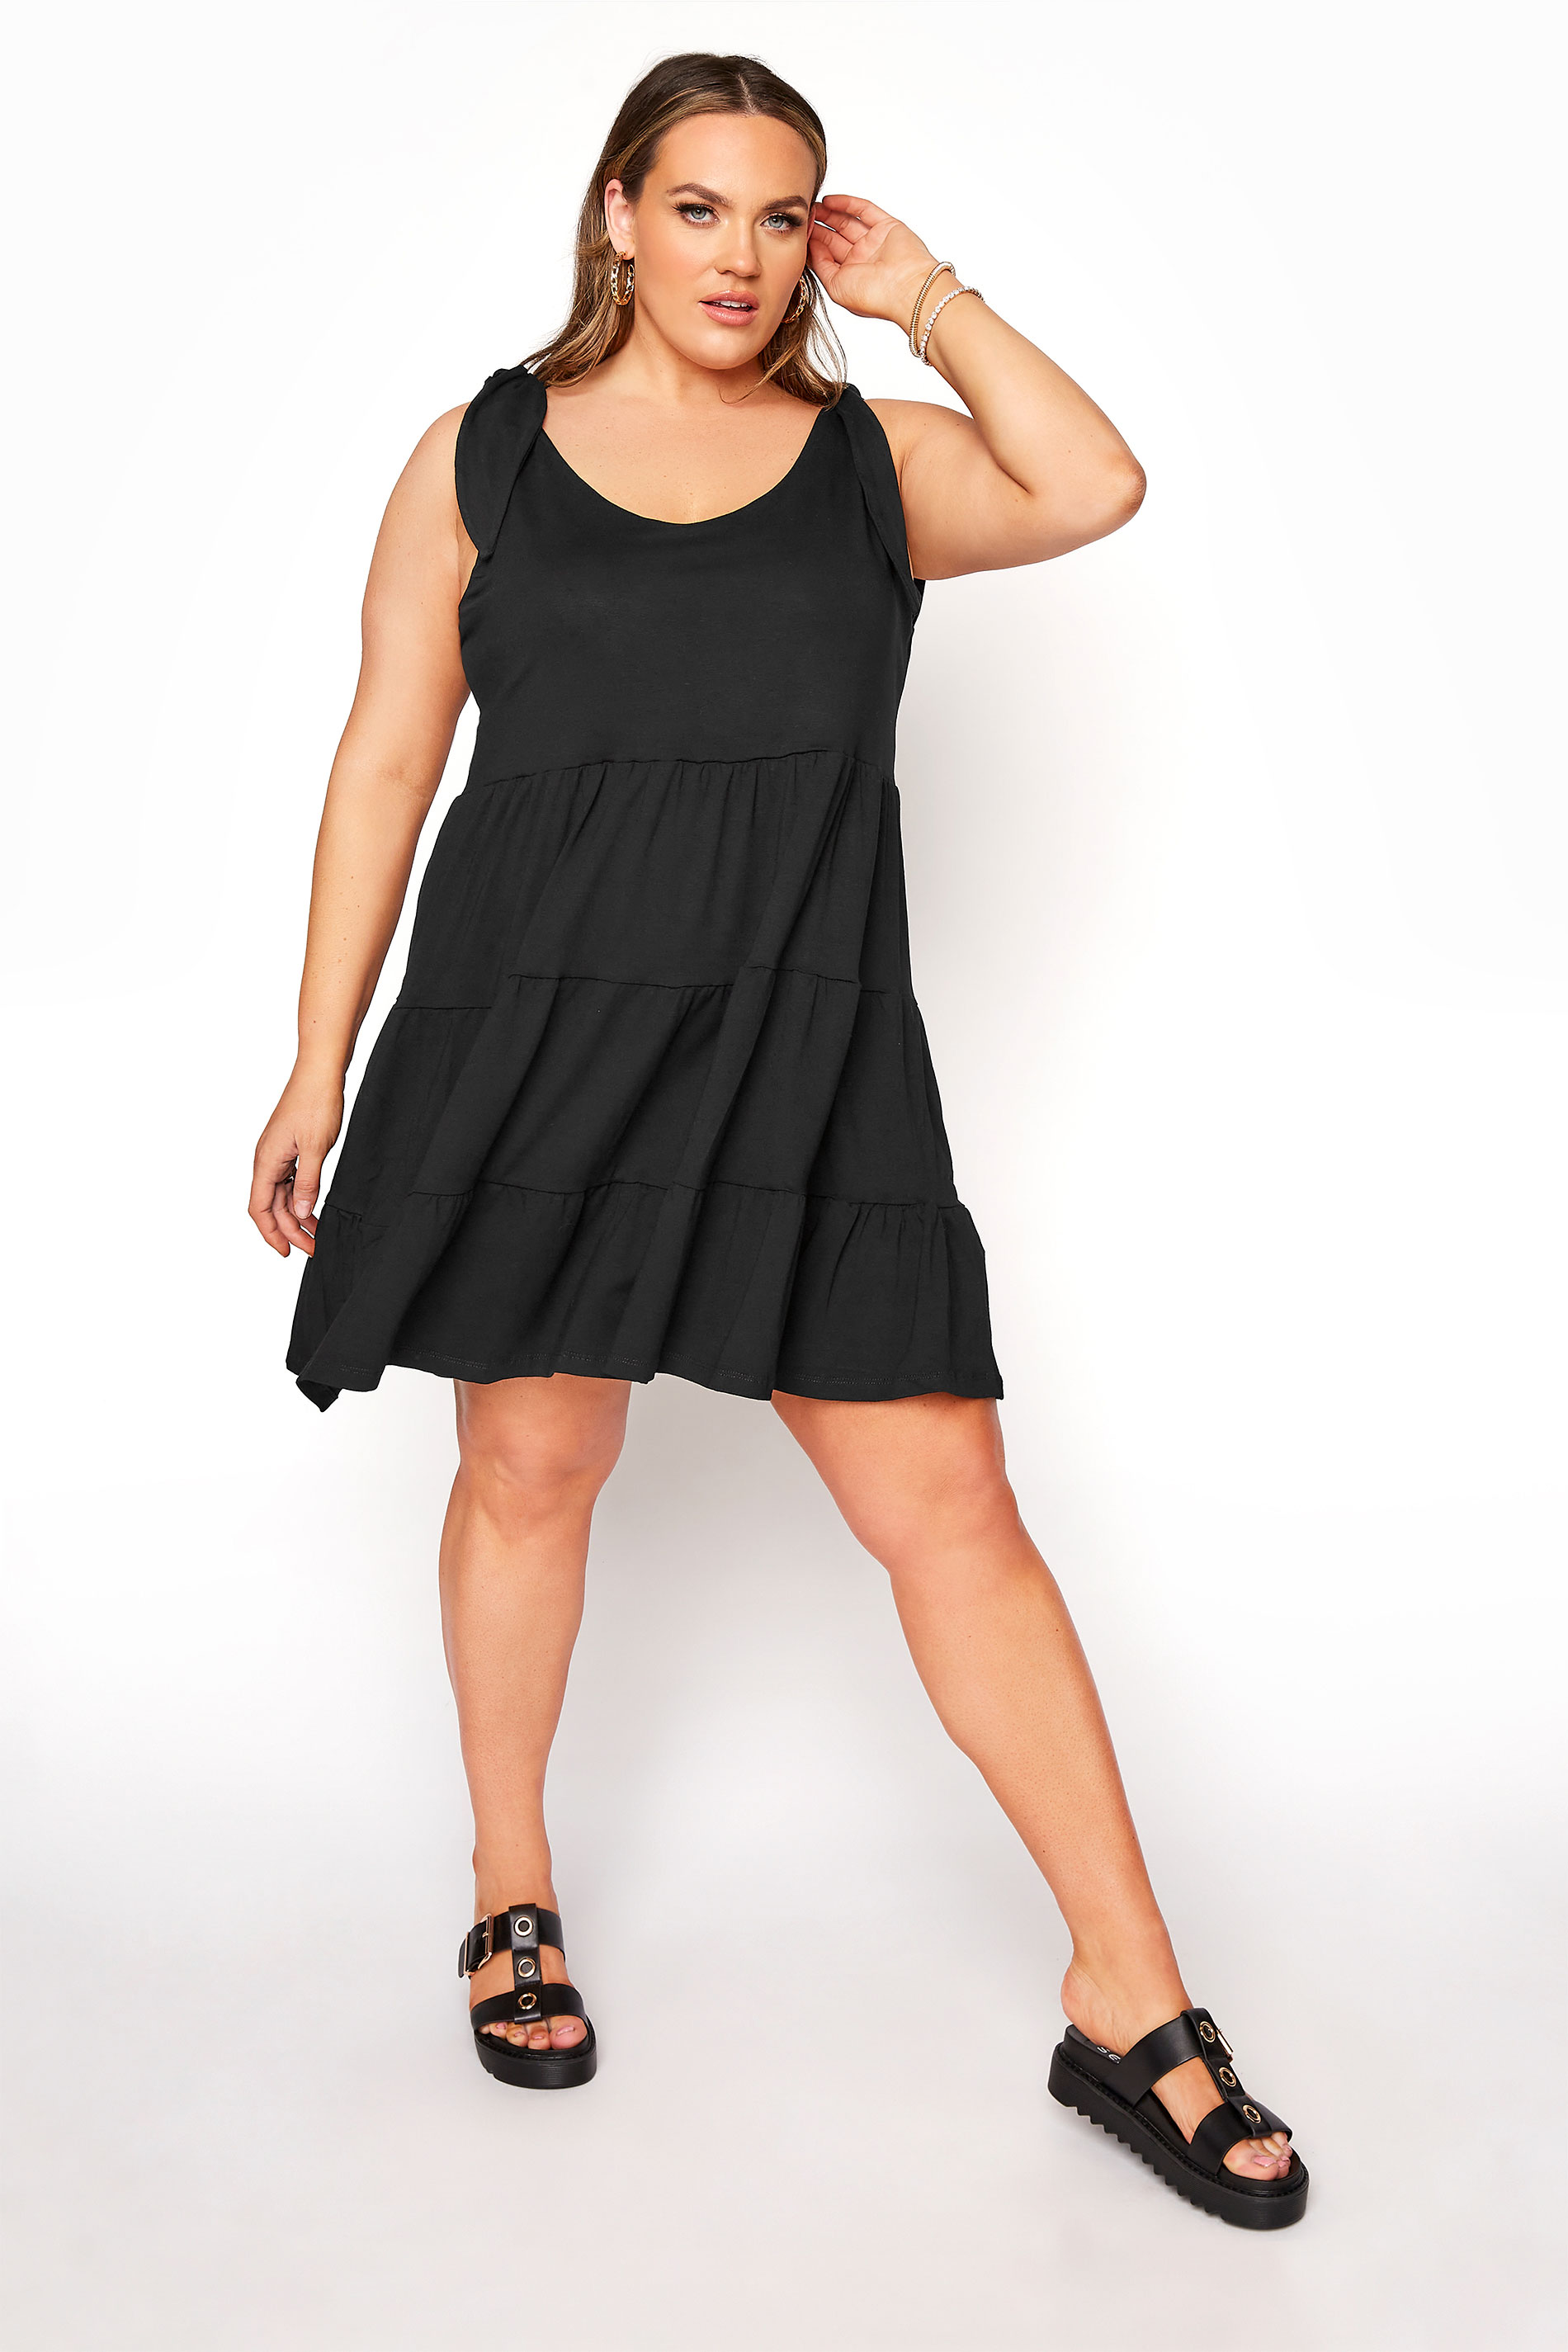 LIMITED COLLECTION Black Tiered Jersey Dress_A.jpg